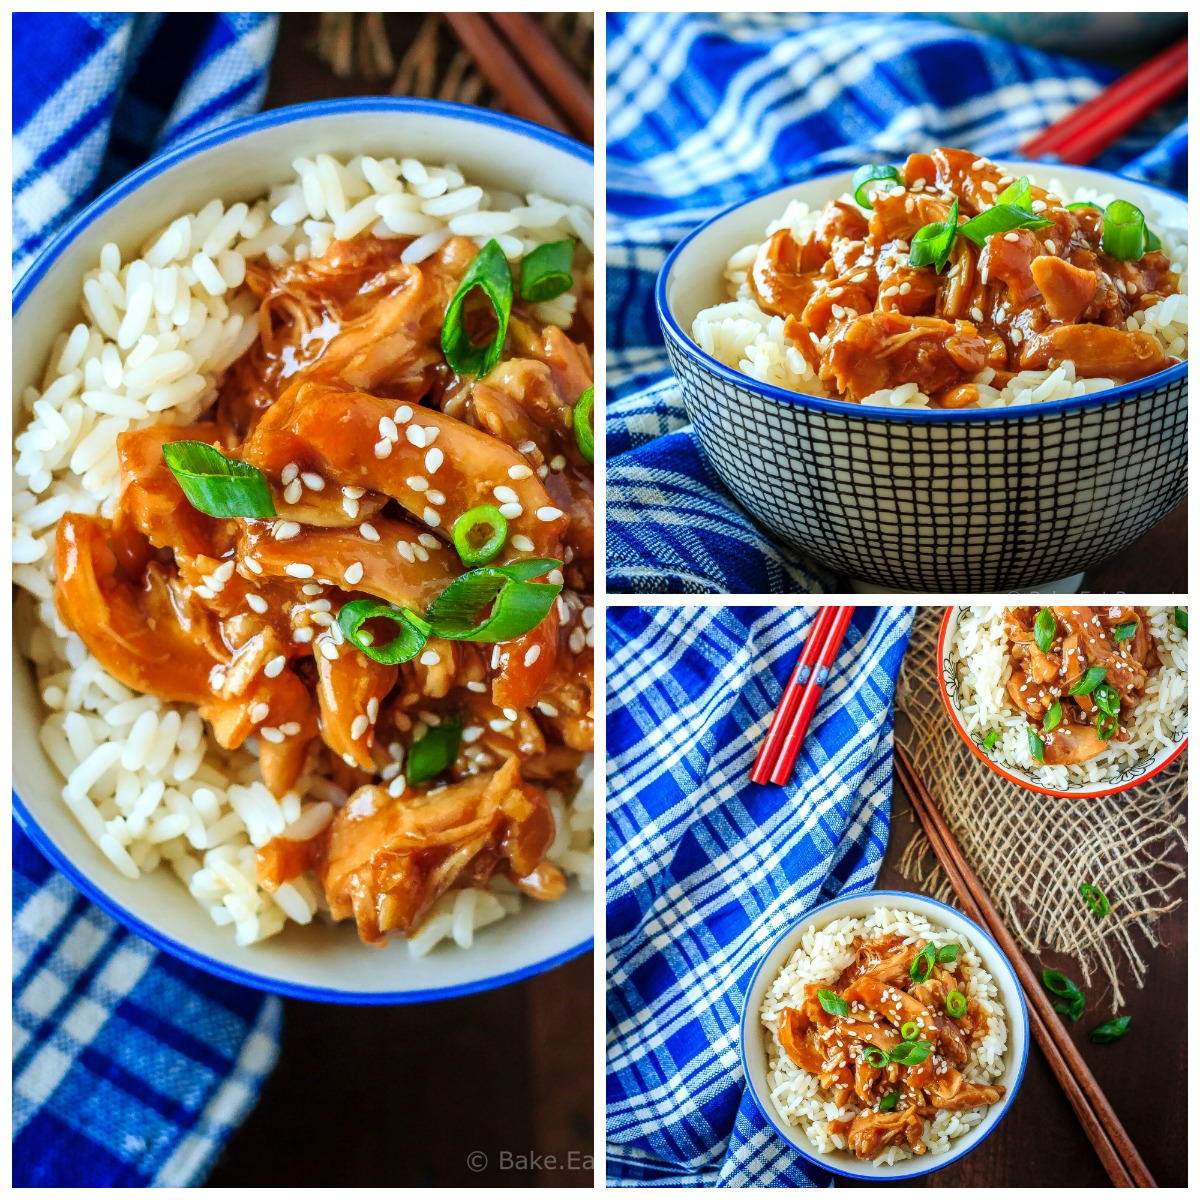 This slow cooker teriyaki chicken is a quick and easy dinner recipe that takes just minutes to get into the slow cooker. Perfect meal for those busy weeknights!